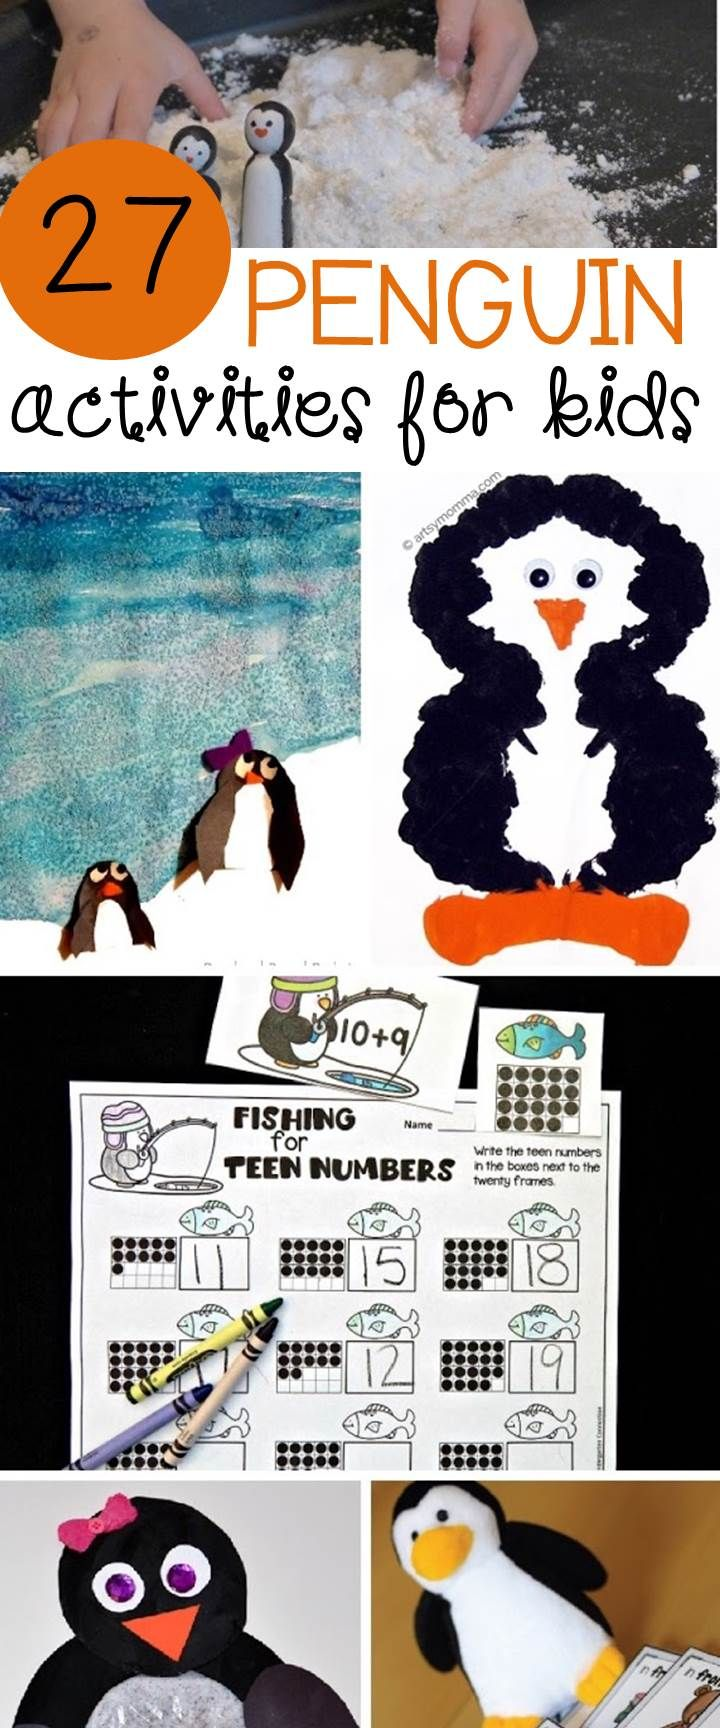 These 27 super cool penguin activities for kids are must-try crafts, printables, and experiments to add to your lesson plans or penguin unit!